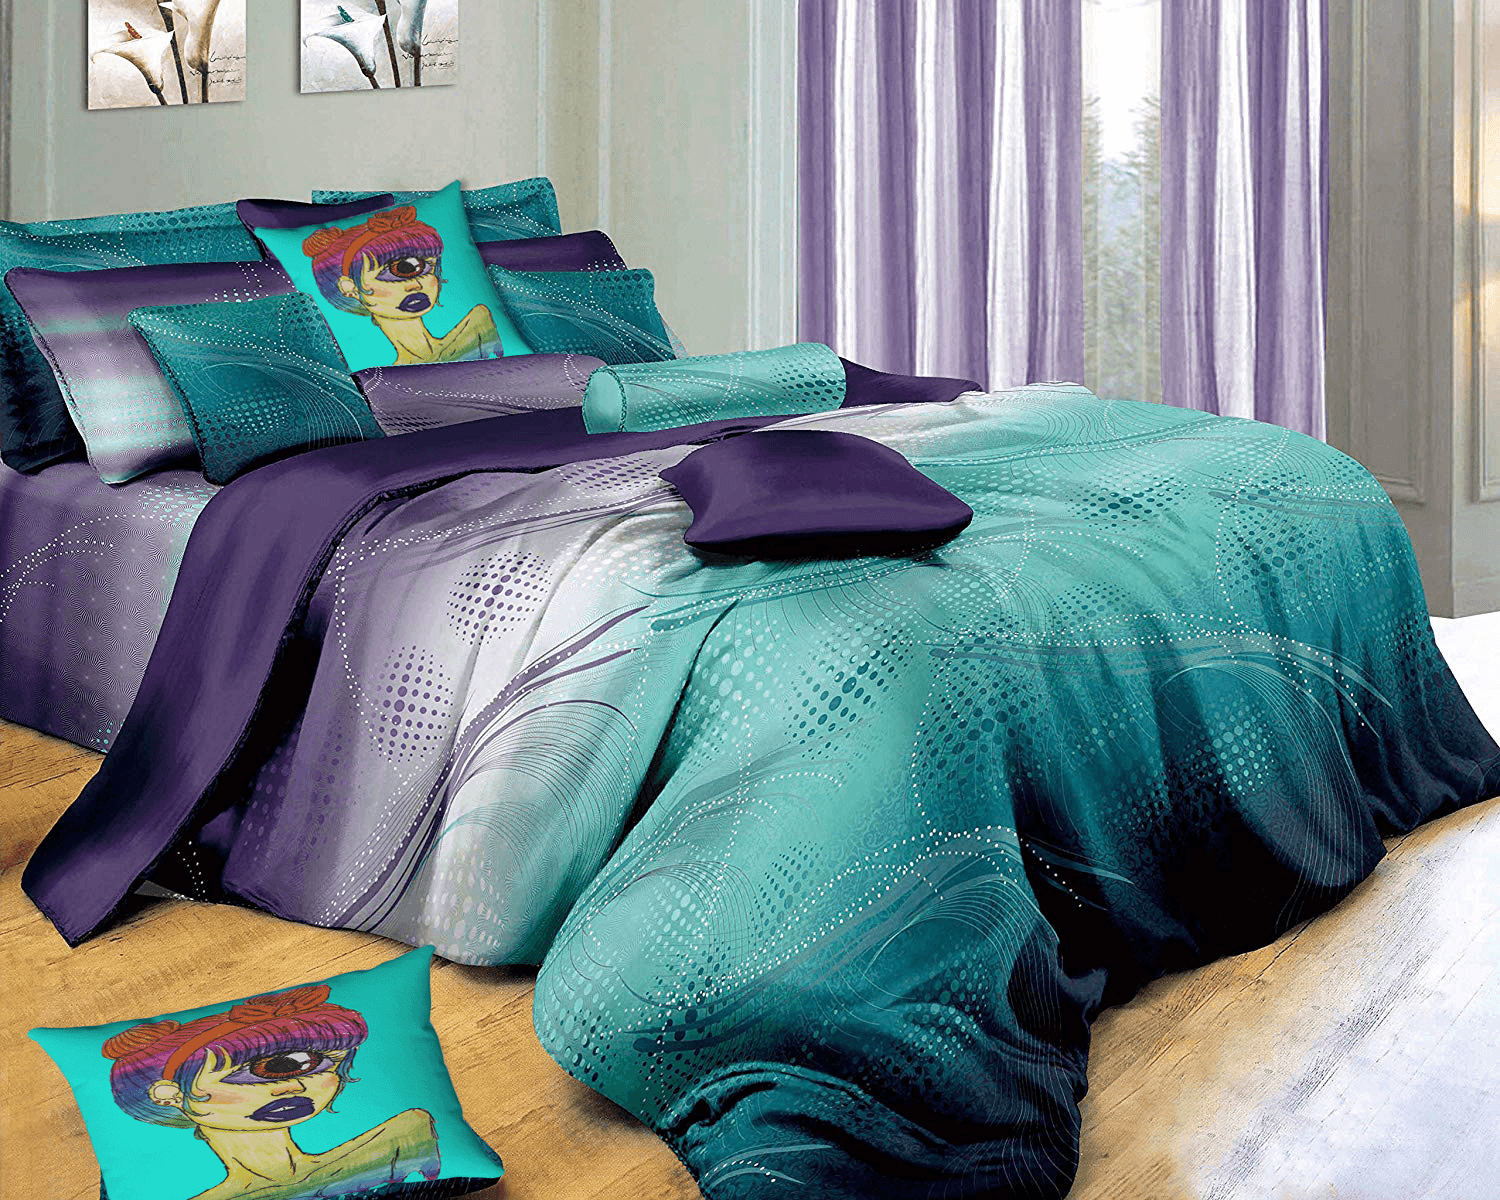 Cyclops Accent Pillow  by Ayanna Aliwith  Swanson Beddings Twilight-P 3-Piece 100% Cotton Bedding Set